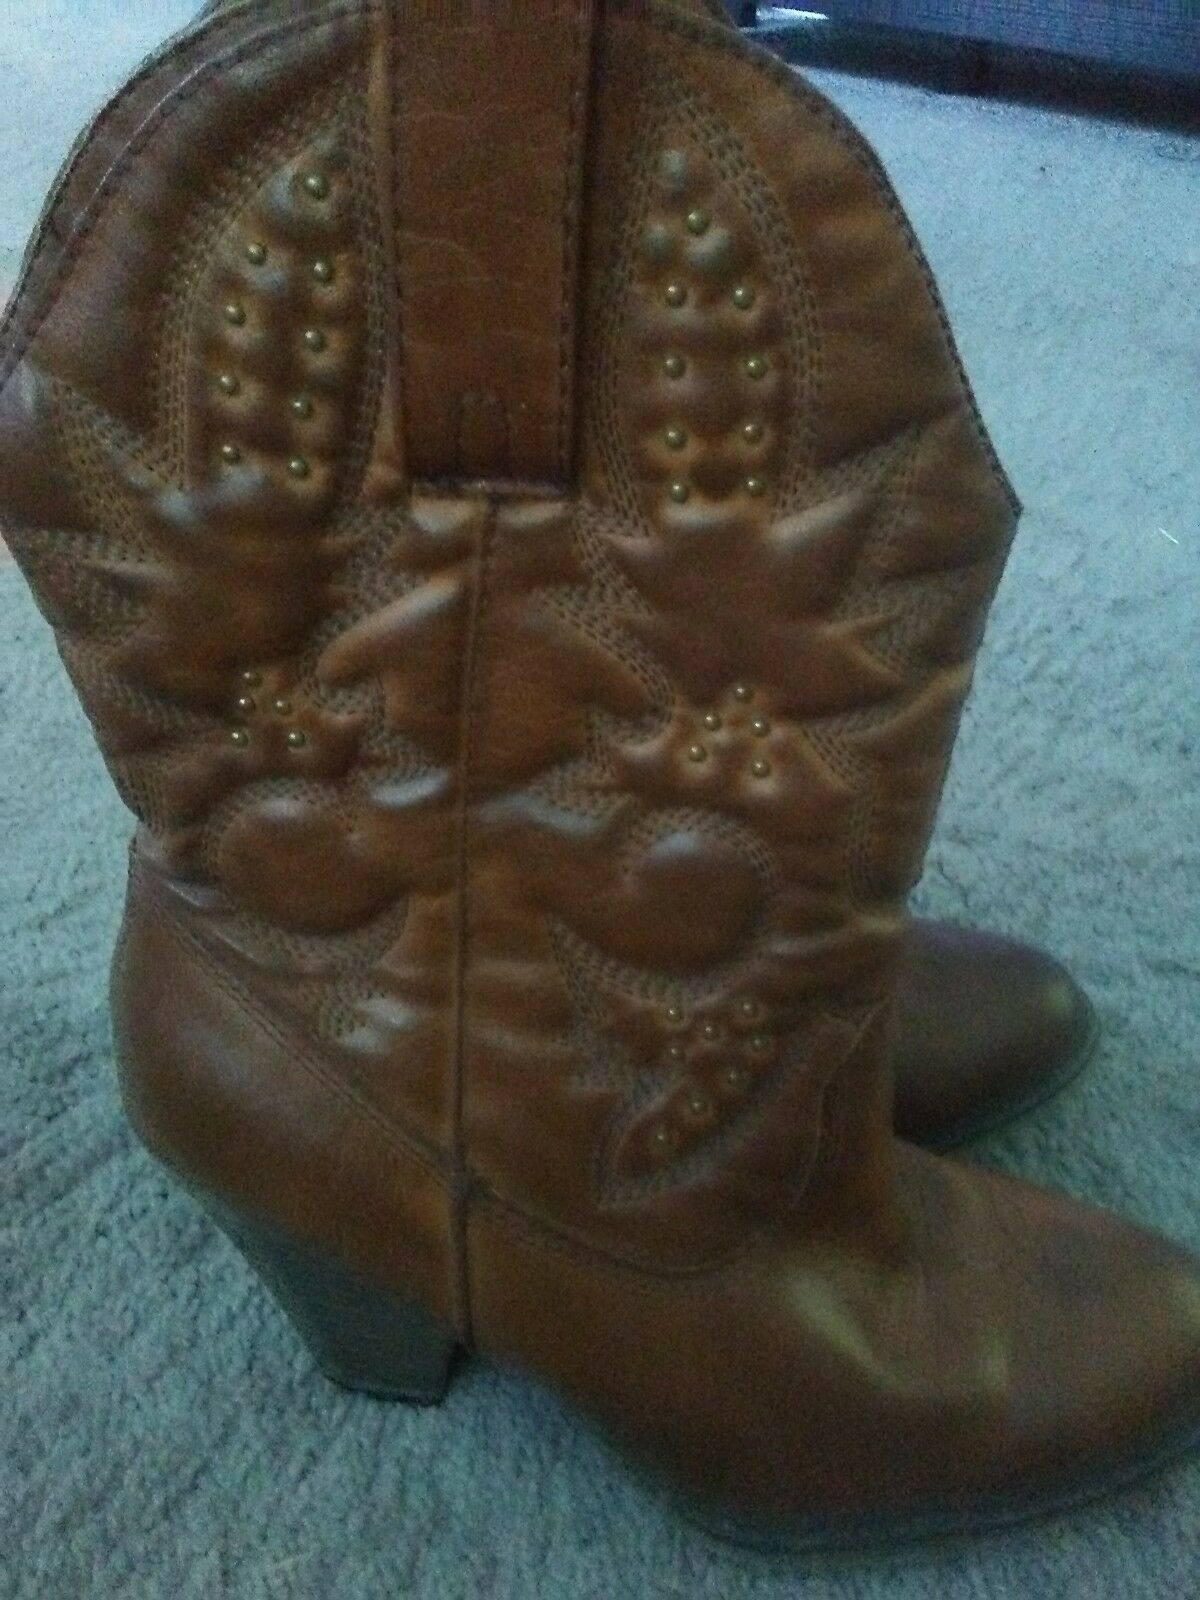 Women's Brown Leather Boots Mia Girl 'Larue' Mid-Calf Cowboy Boots Leather Size 7.5M 3b39e8